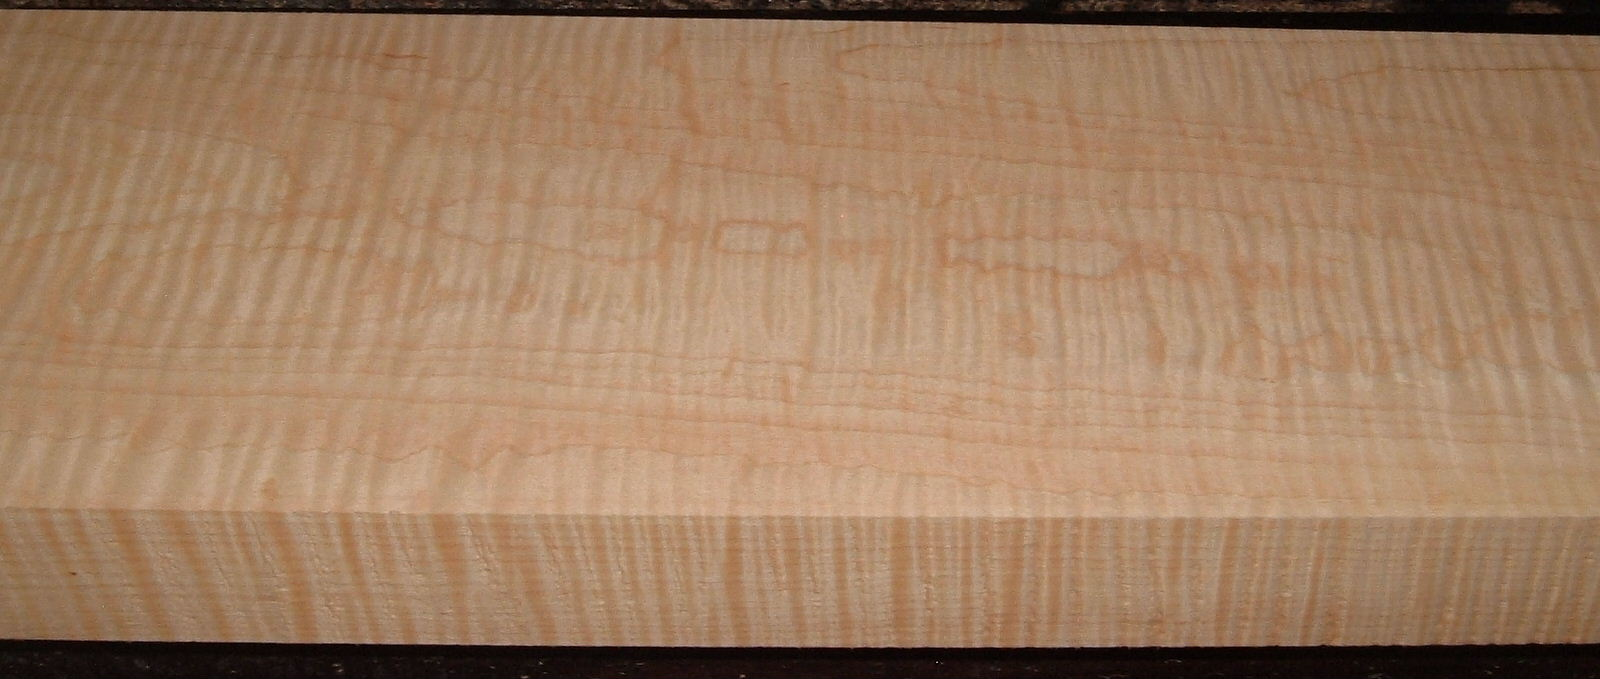 M2007-610, 1-13/16x7-1/4x43, Curly Tiger Maple, Luthier Figure